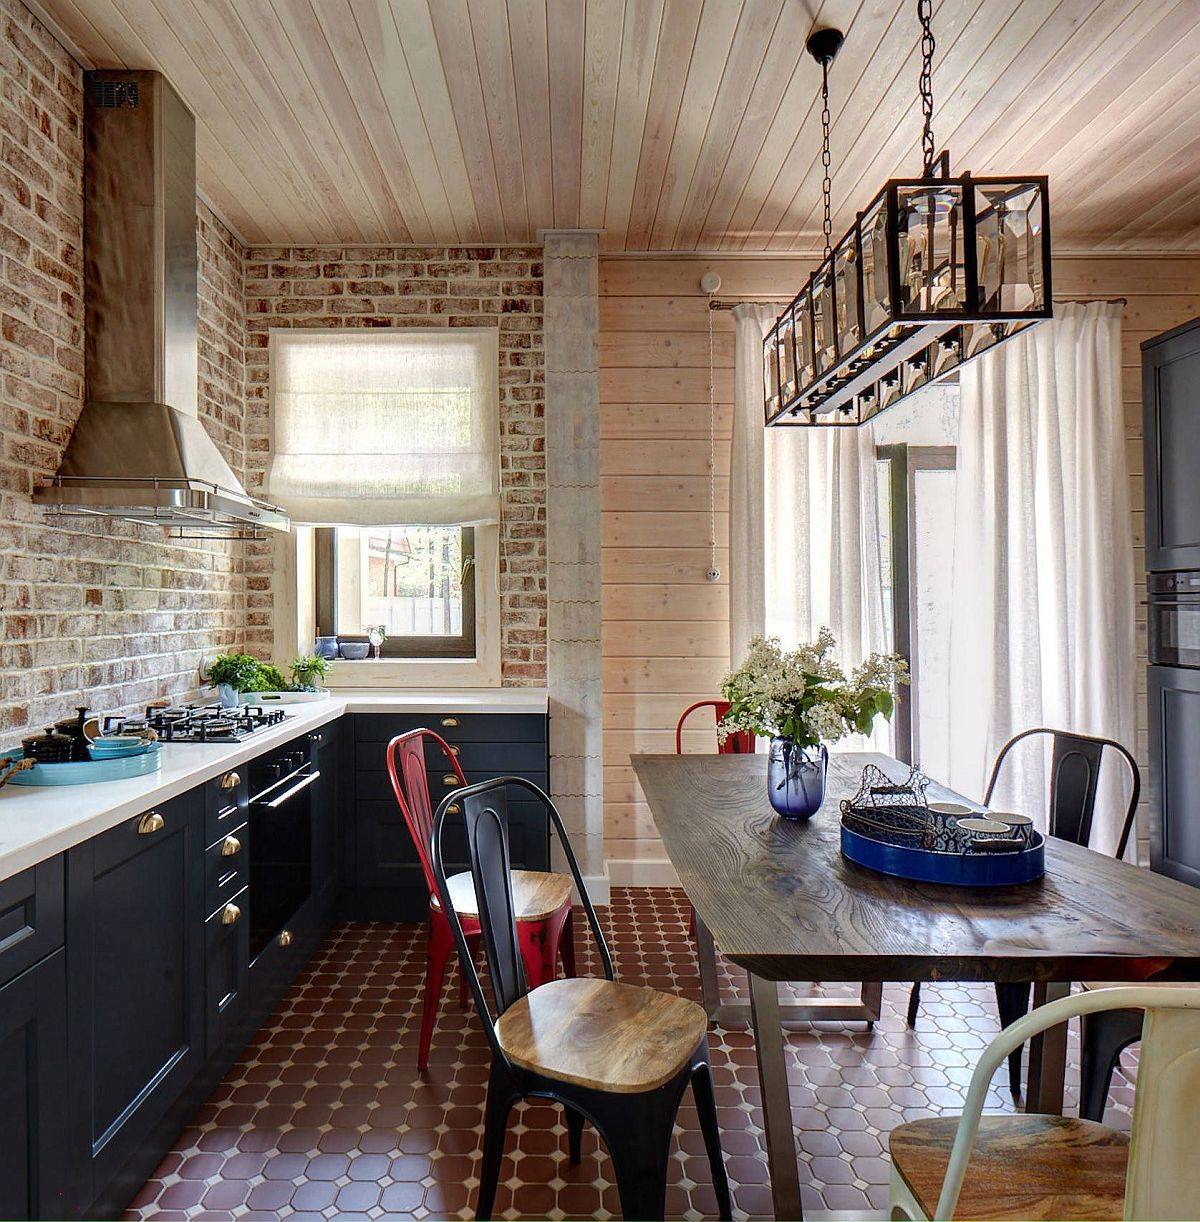 Brick and wood walls look just classy in the modern farmhouse kitchen